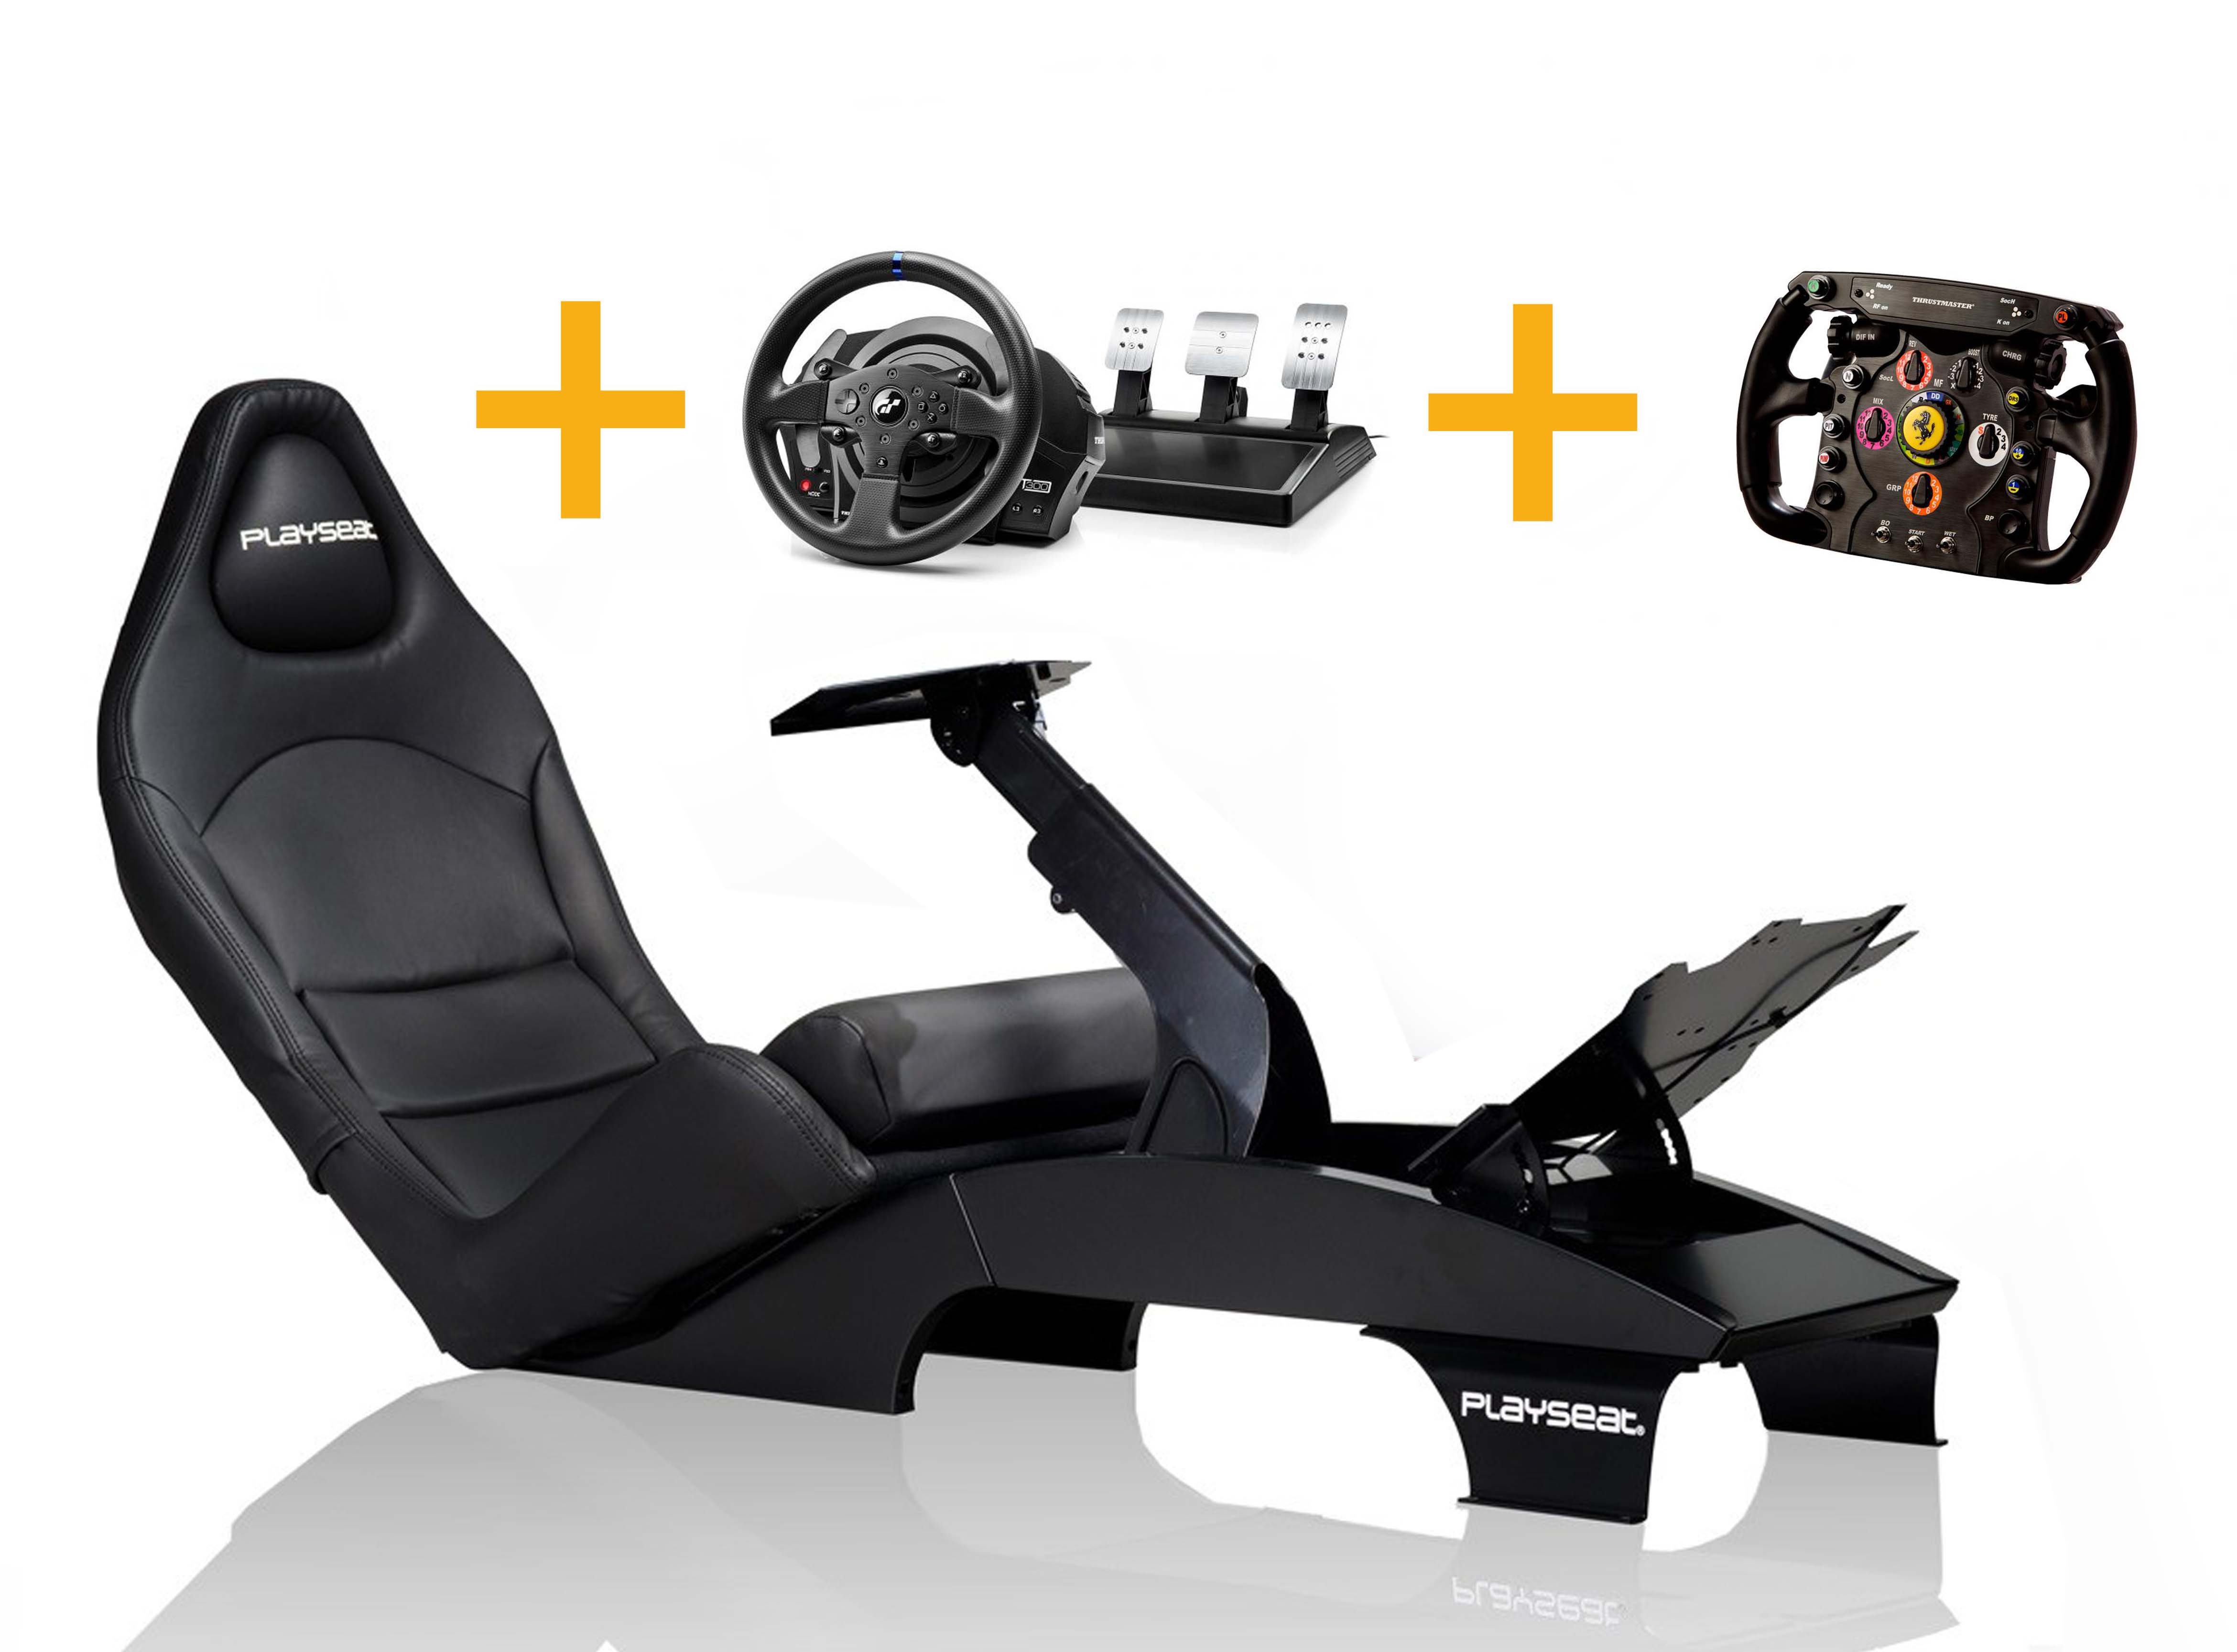 Playseat Playseat F1 Gran Prix + T300 RS GT+ Ferrari F1 Wheel Add-on